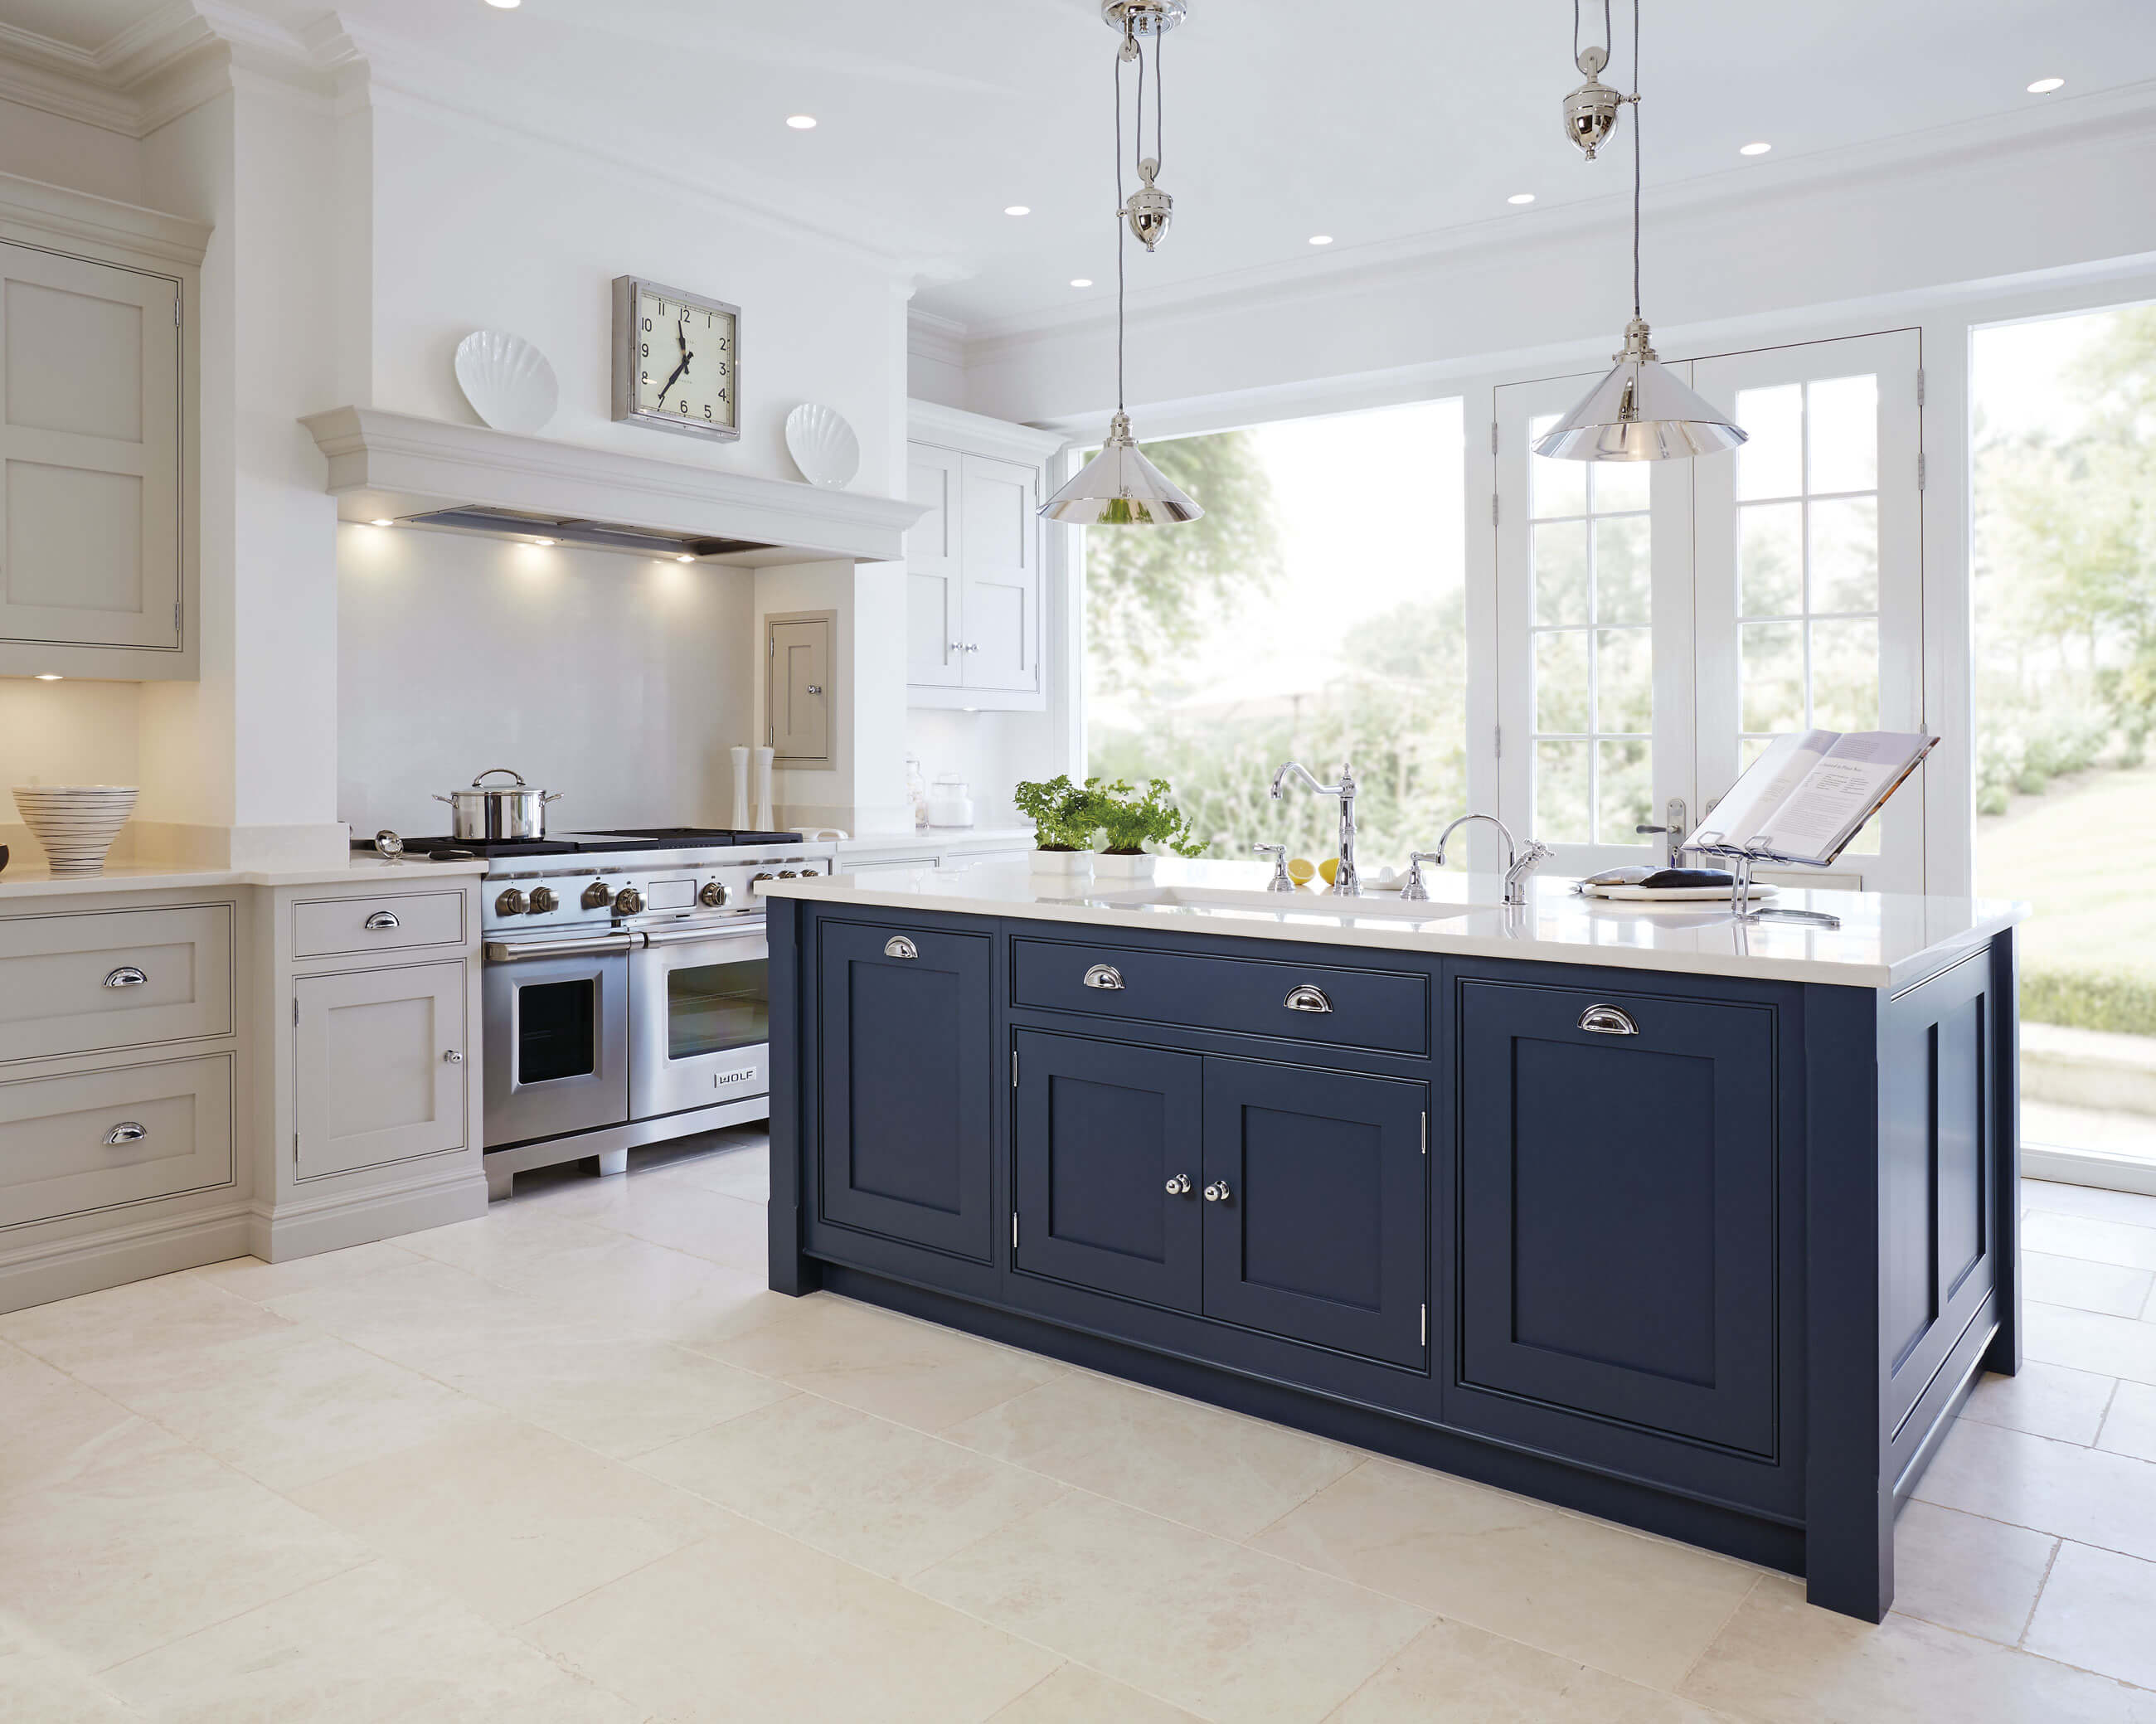 Tom Wolf Kitchen Cabinet Company